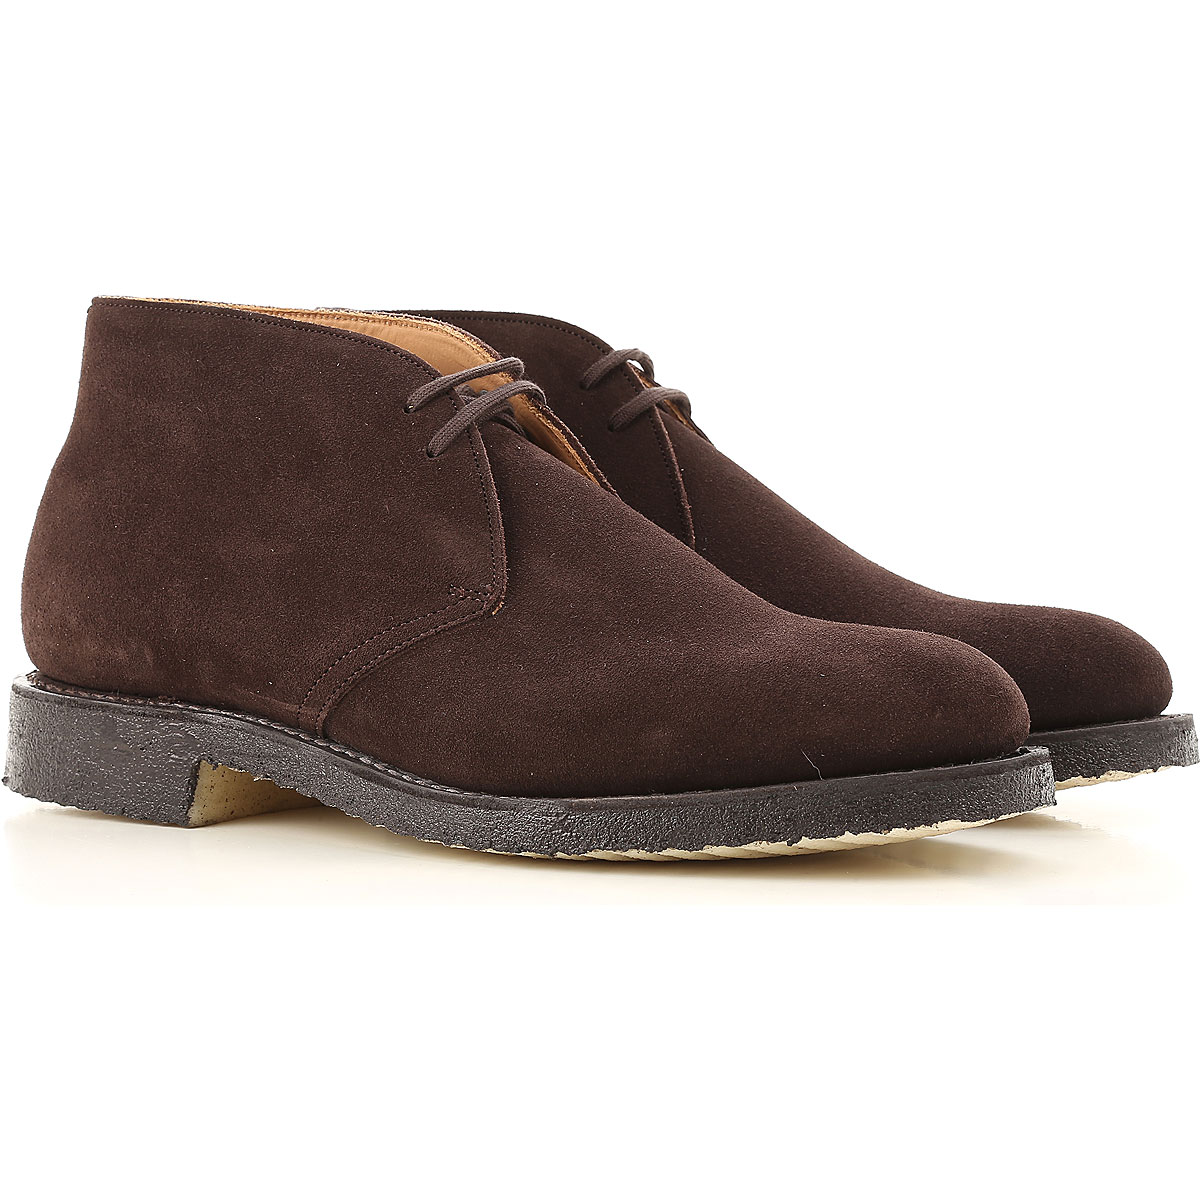 Image of Church's Desert Boots Chukka for Men, Brown, Suede leather, 2017, 10 10.5 11 7 7.5 8 8.5 9 9.5